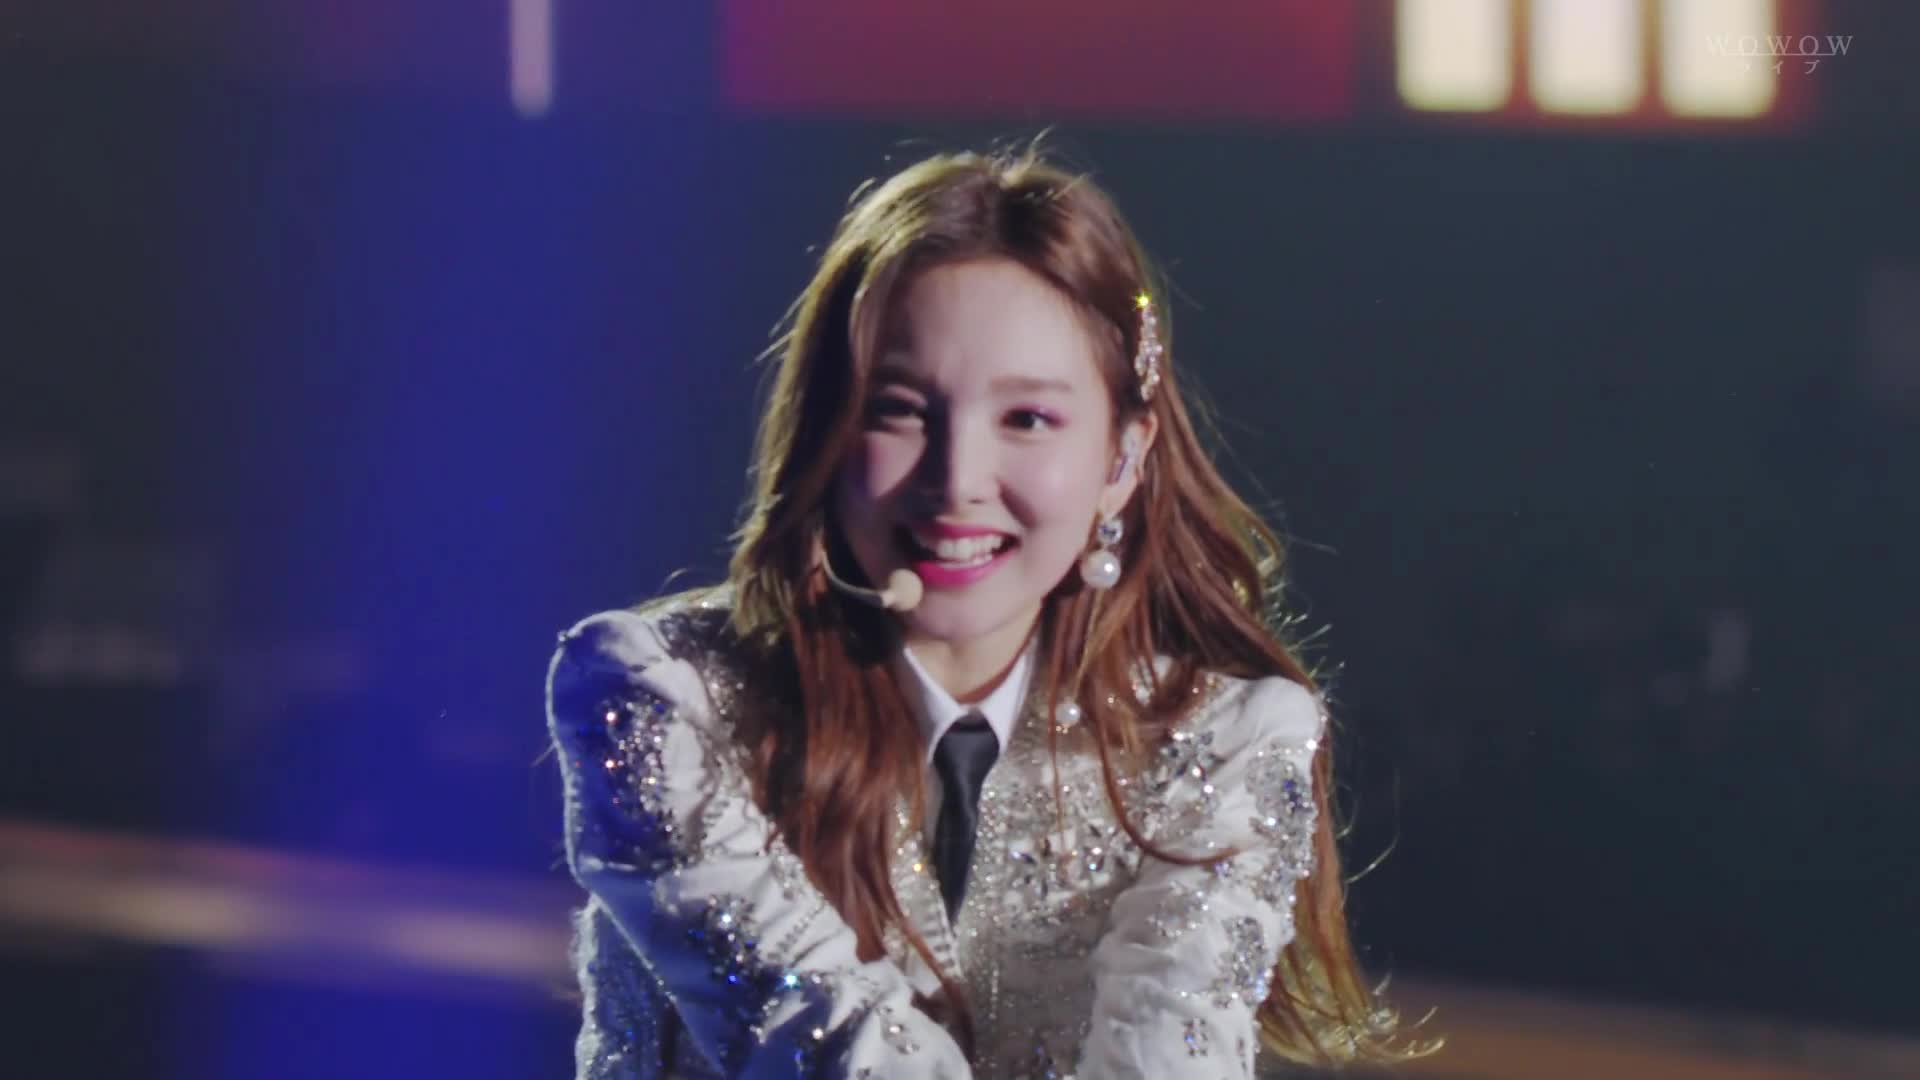 dreamday, Cutie Nayeon pointing and waving at you + heart GIFs